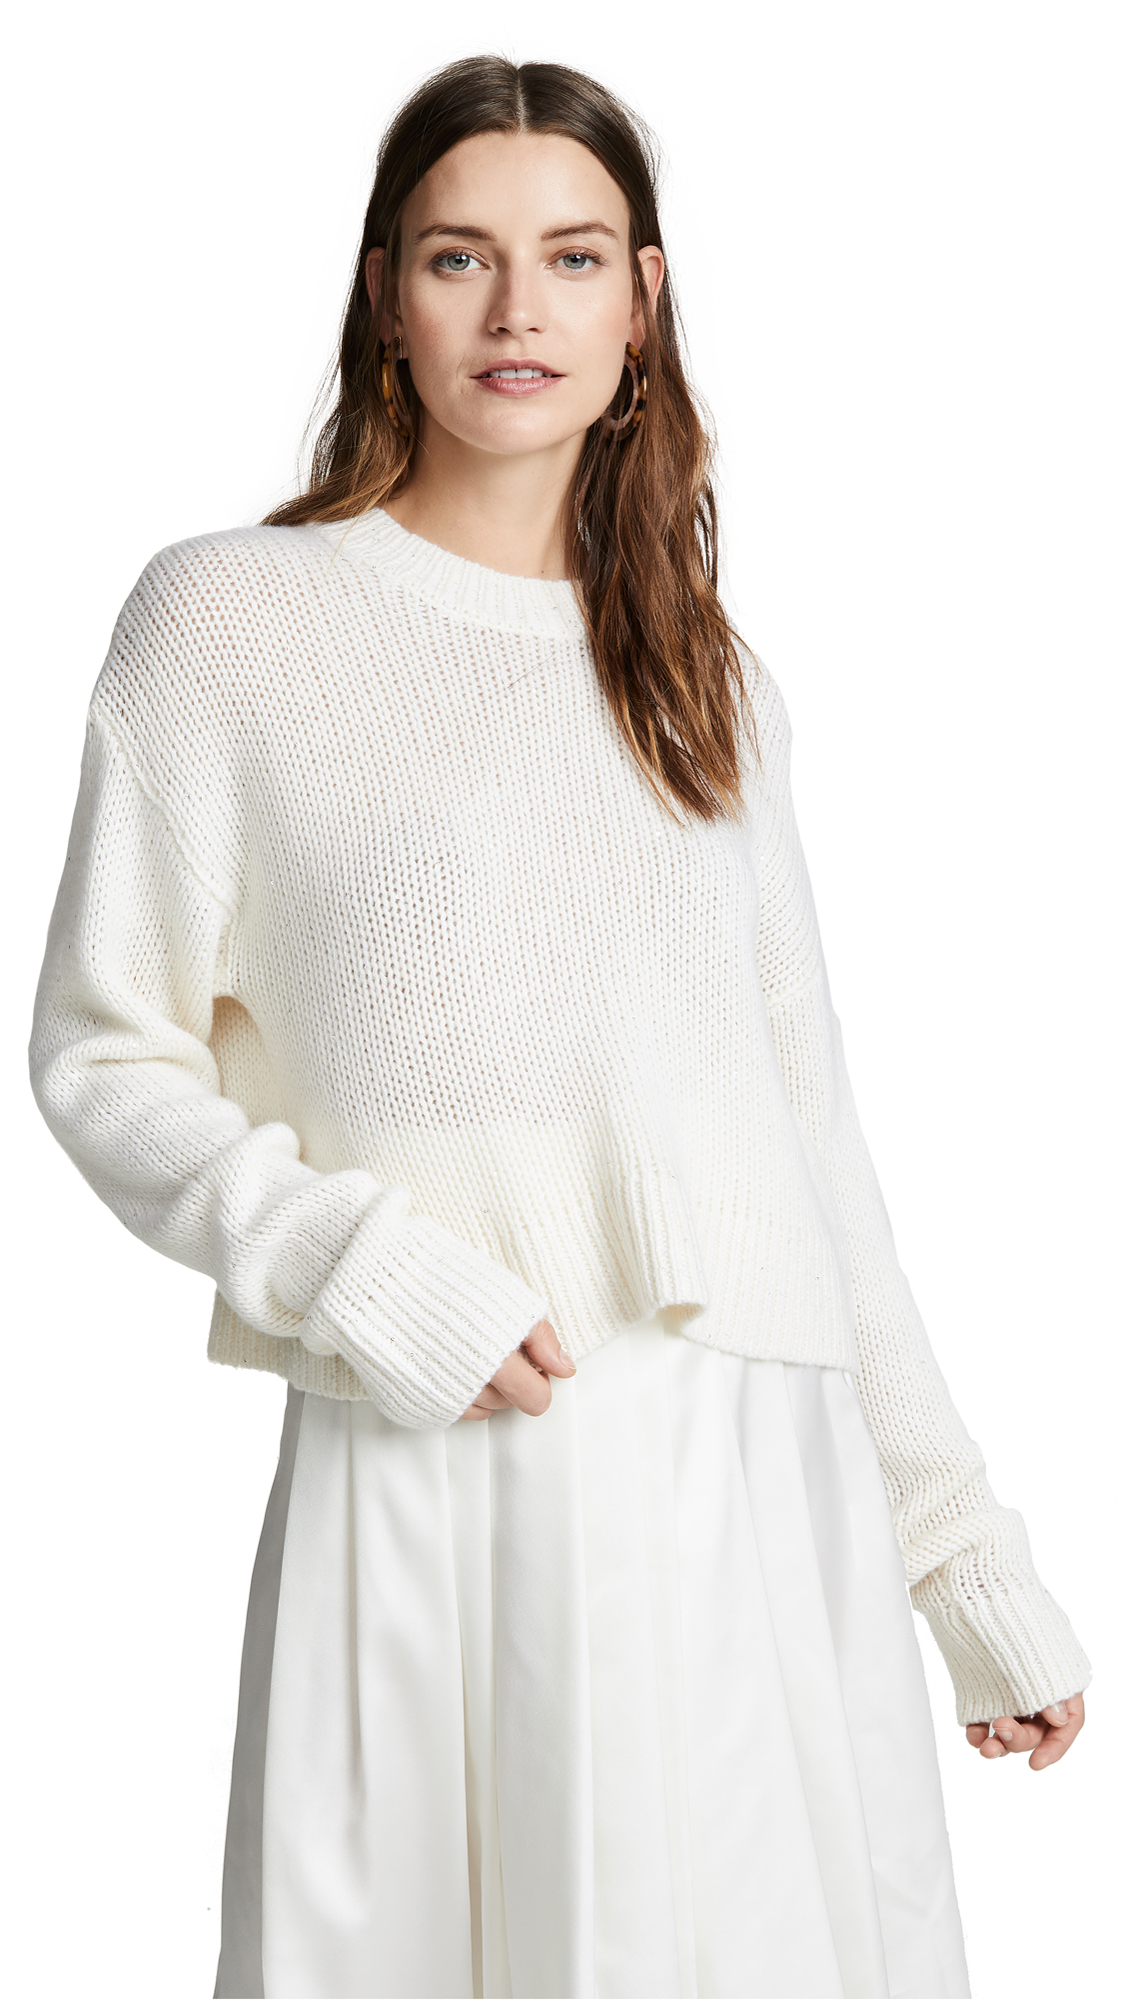 SABLYN Mercy Cropped Sequin Cashmere Sweater in Milk